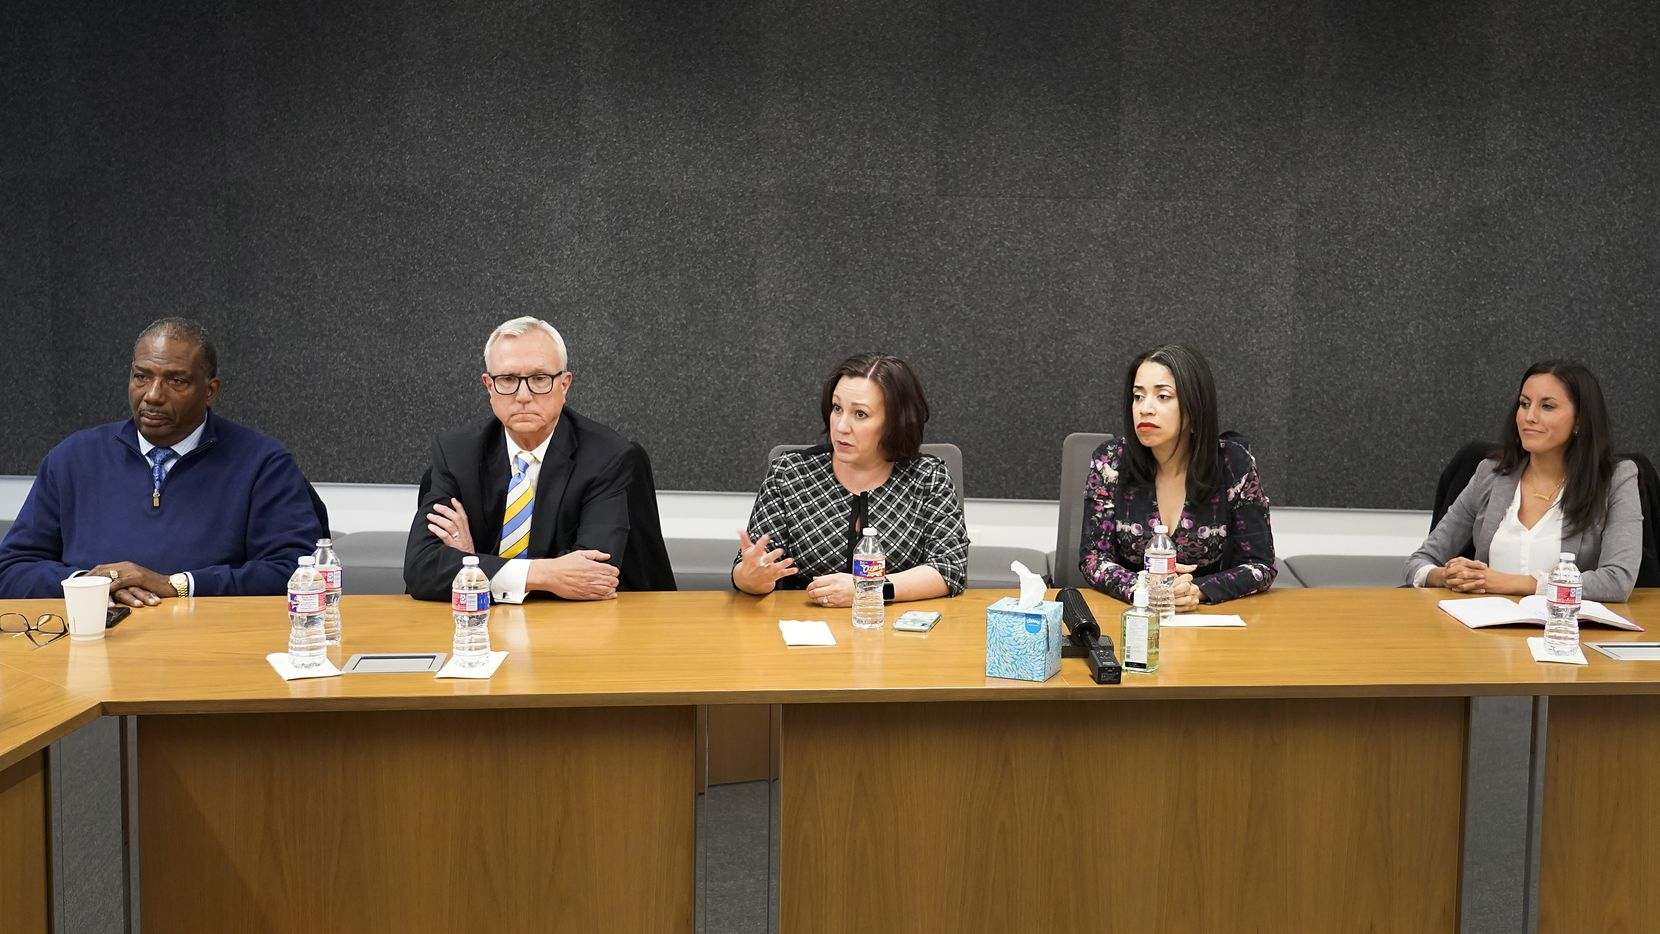 Democratic U.S. Senate candidates Royce West (from left), Chris Bell, MJ Hegar, Amanda Edwards and Cristina Tzintzún Ramirez answered questions from The Dallas Morning News editorial board on Feb. 5, 2020.